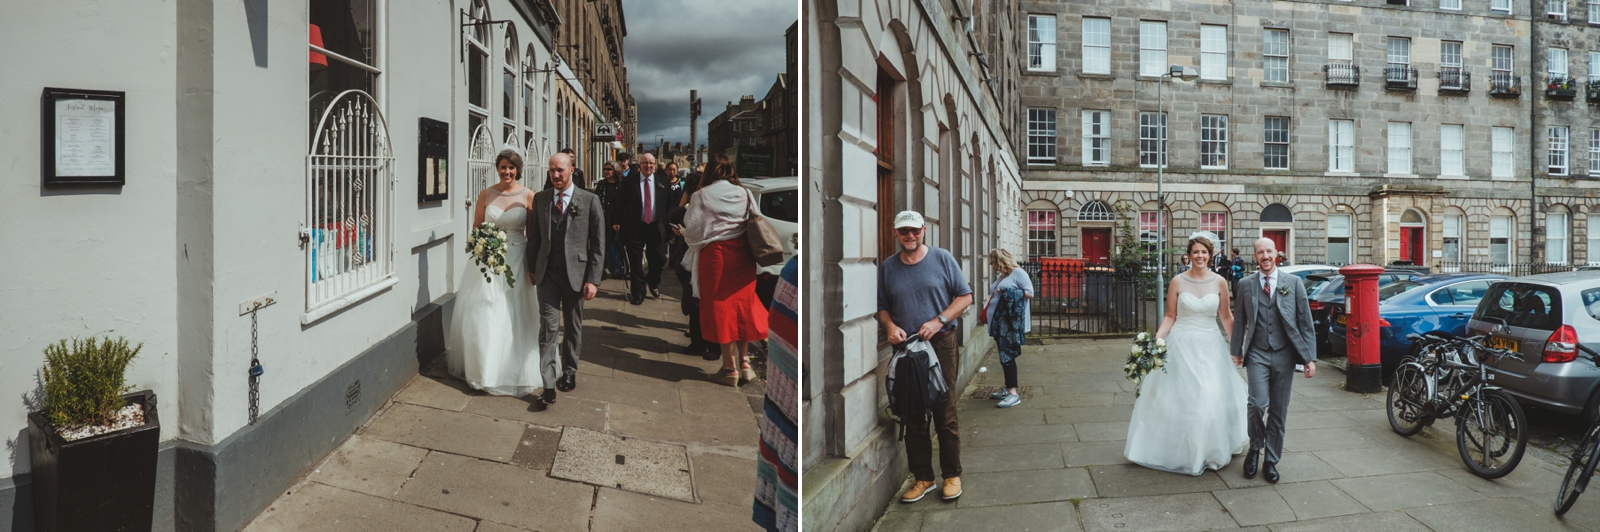 Angela___Andy_s_Edinburgh_elopement_by_Barry_Forshaw_0227.jpg